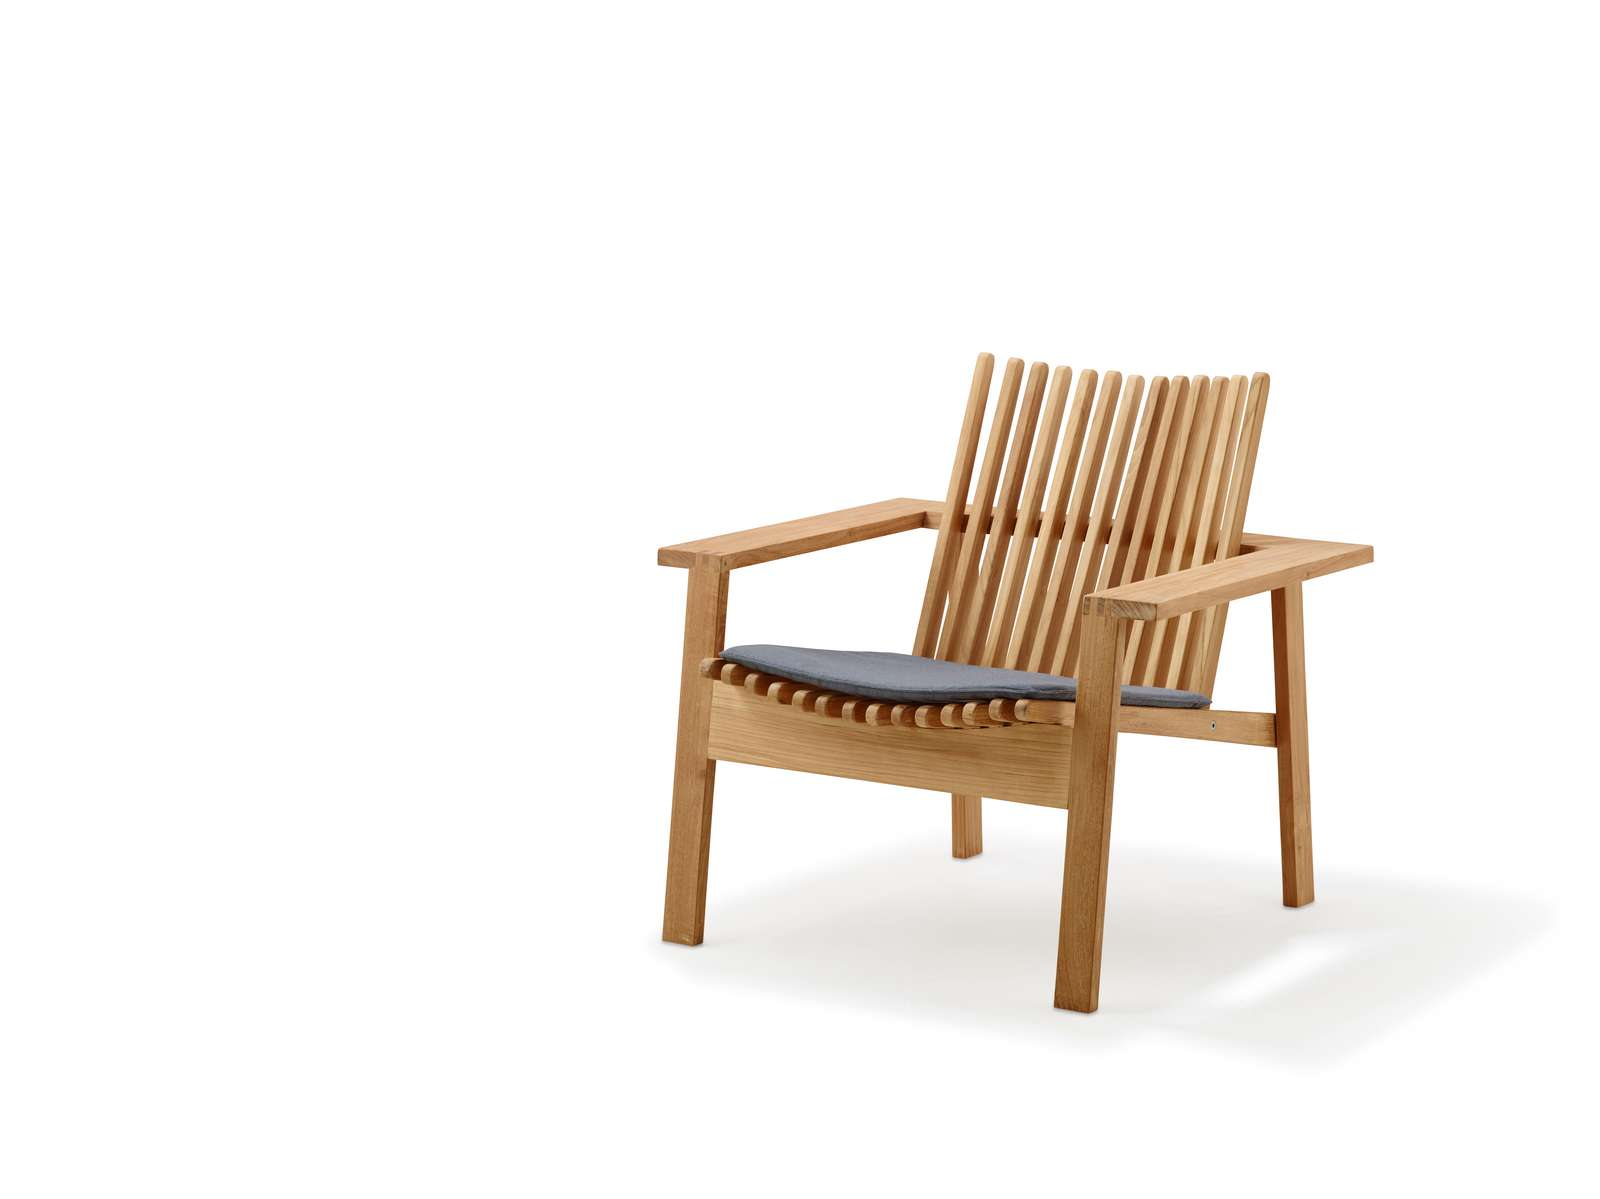 Picture of: Cane Line Amaze Outdoor Lounge Chair Now At Nordic Urban In Berlin